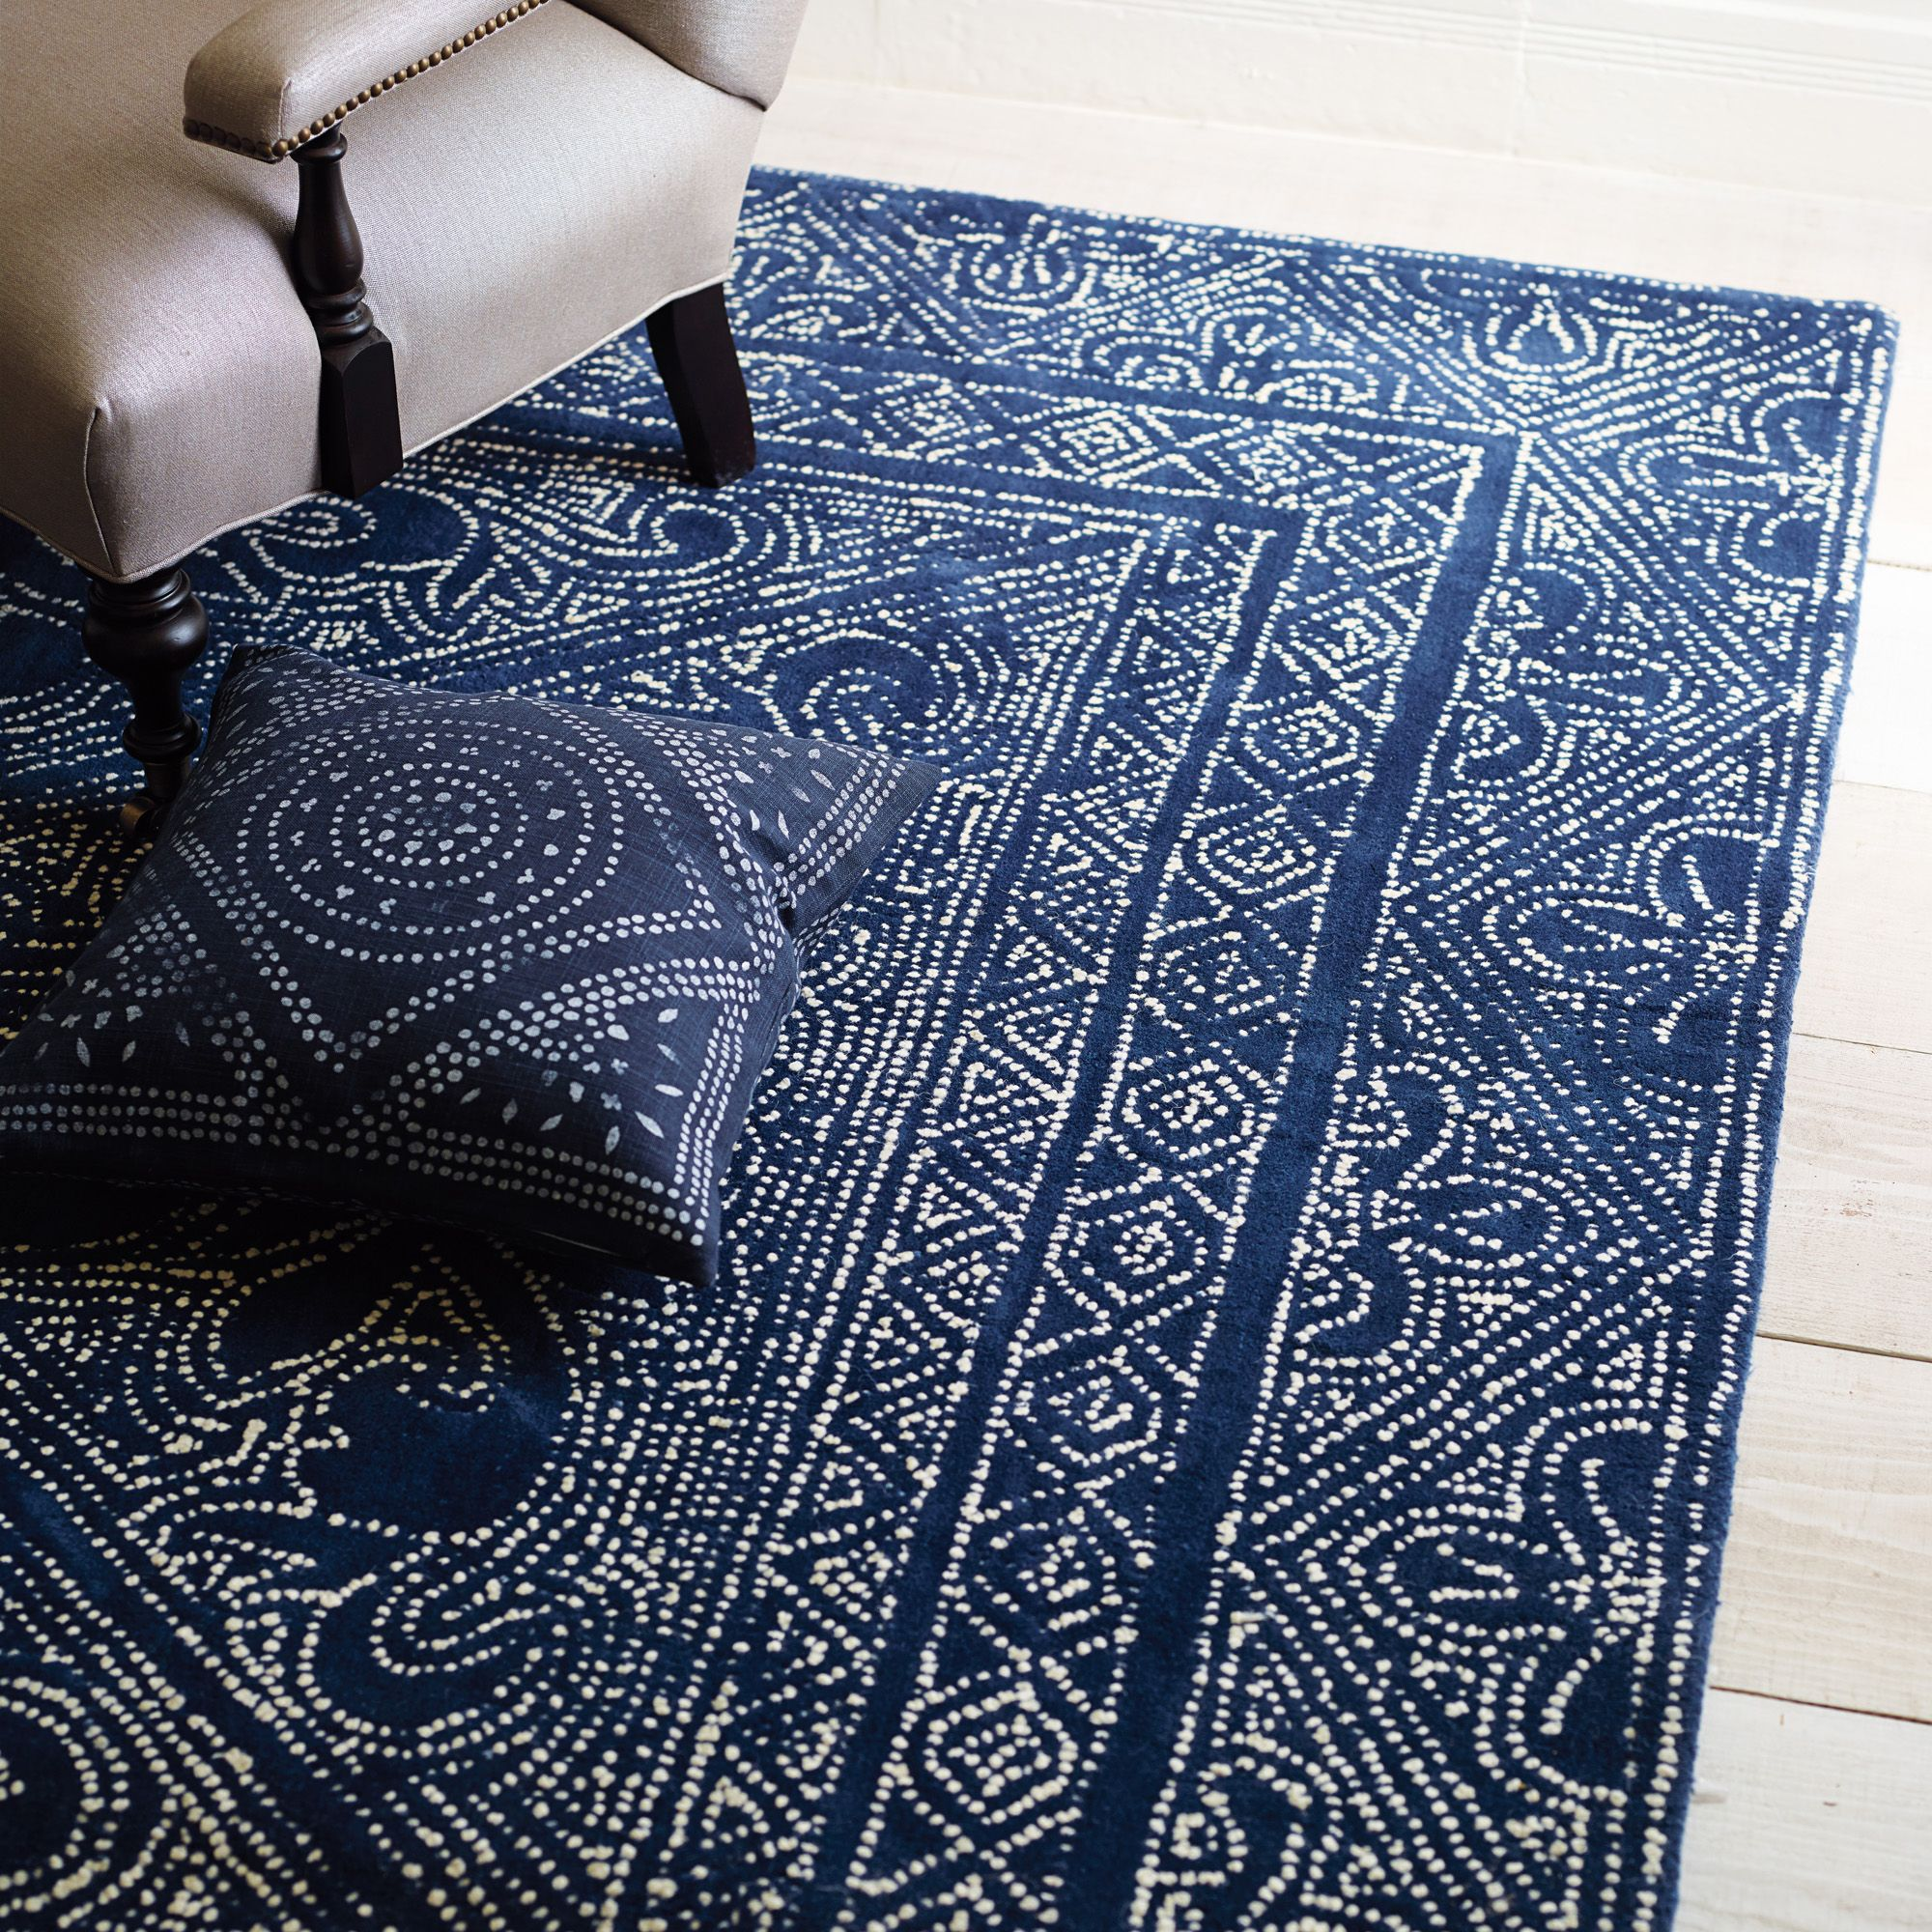 by navy gray blue stripes surya rugs com rosenberryrooms zoom rug